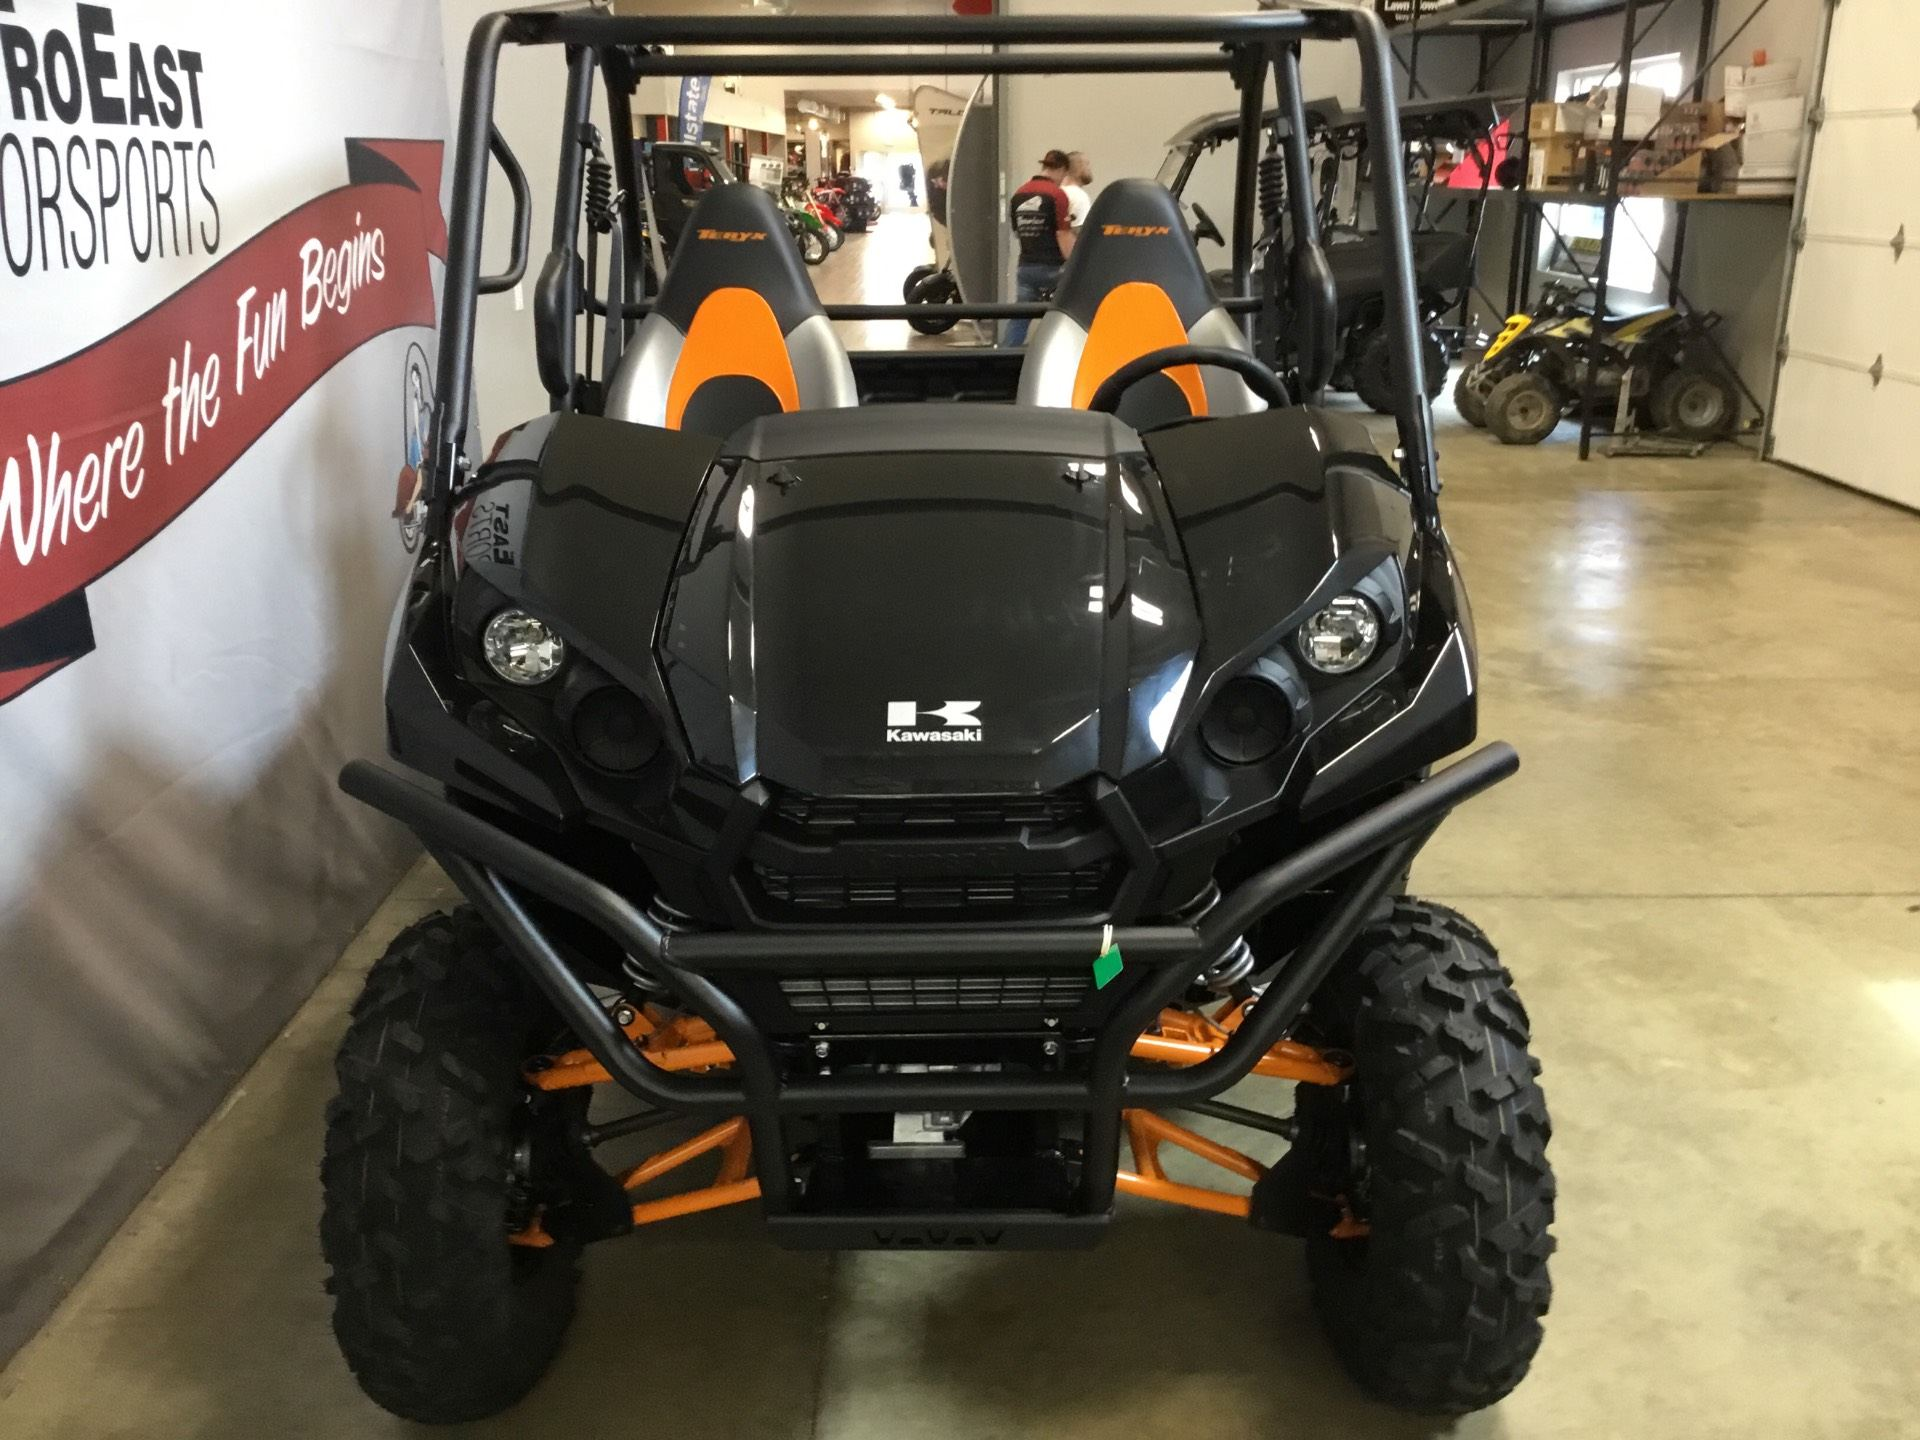 2020 Kawasaki Teryx in O Fallon, Illinois - Photo 3